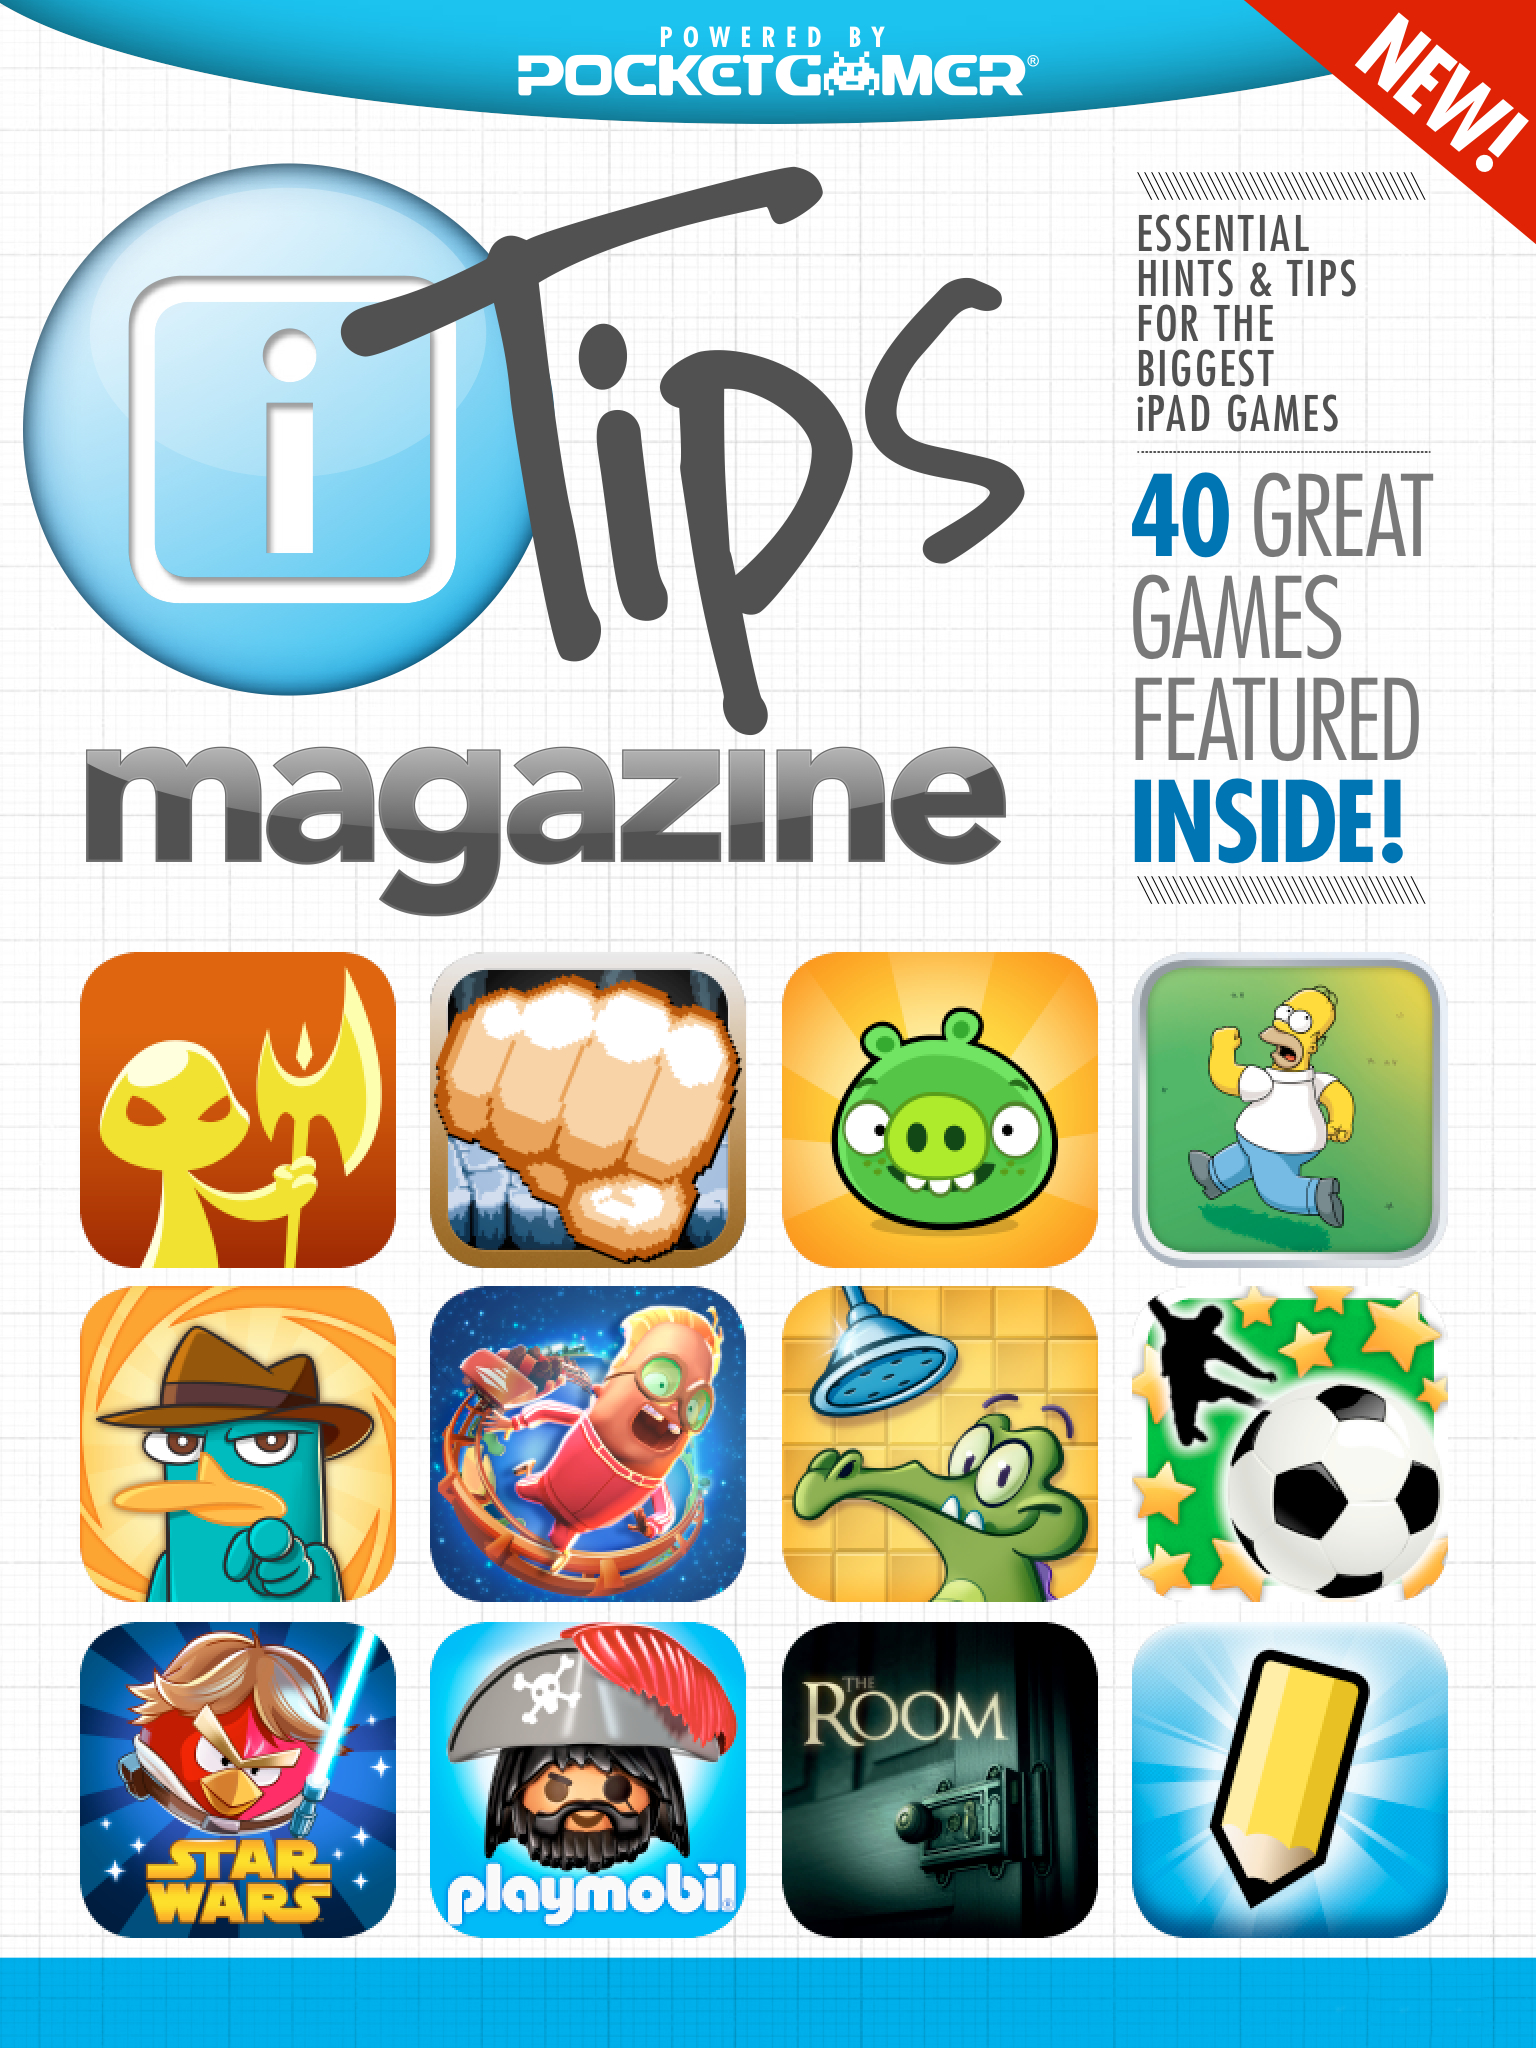 Launch issue of Pocket Gamer's iTips magazine is now available on the App Store